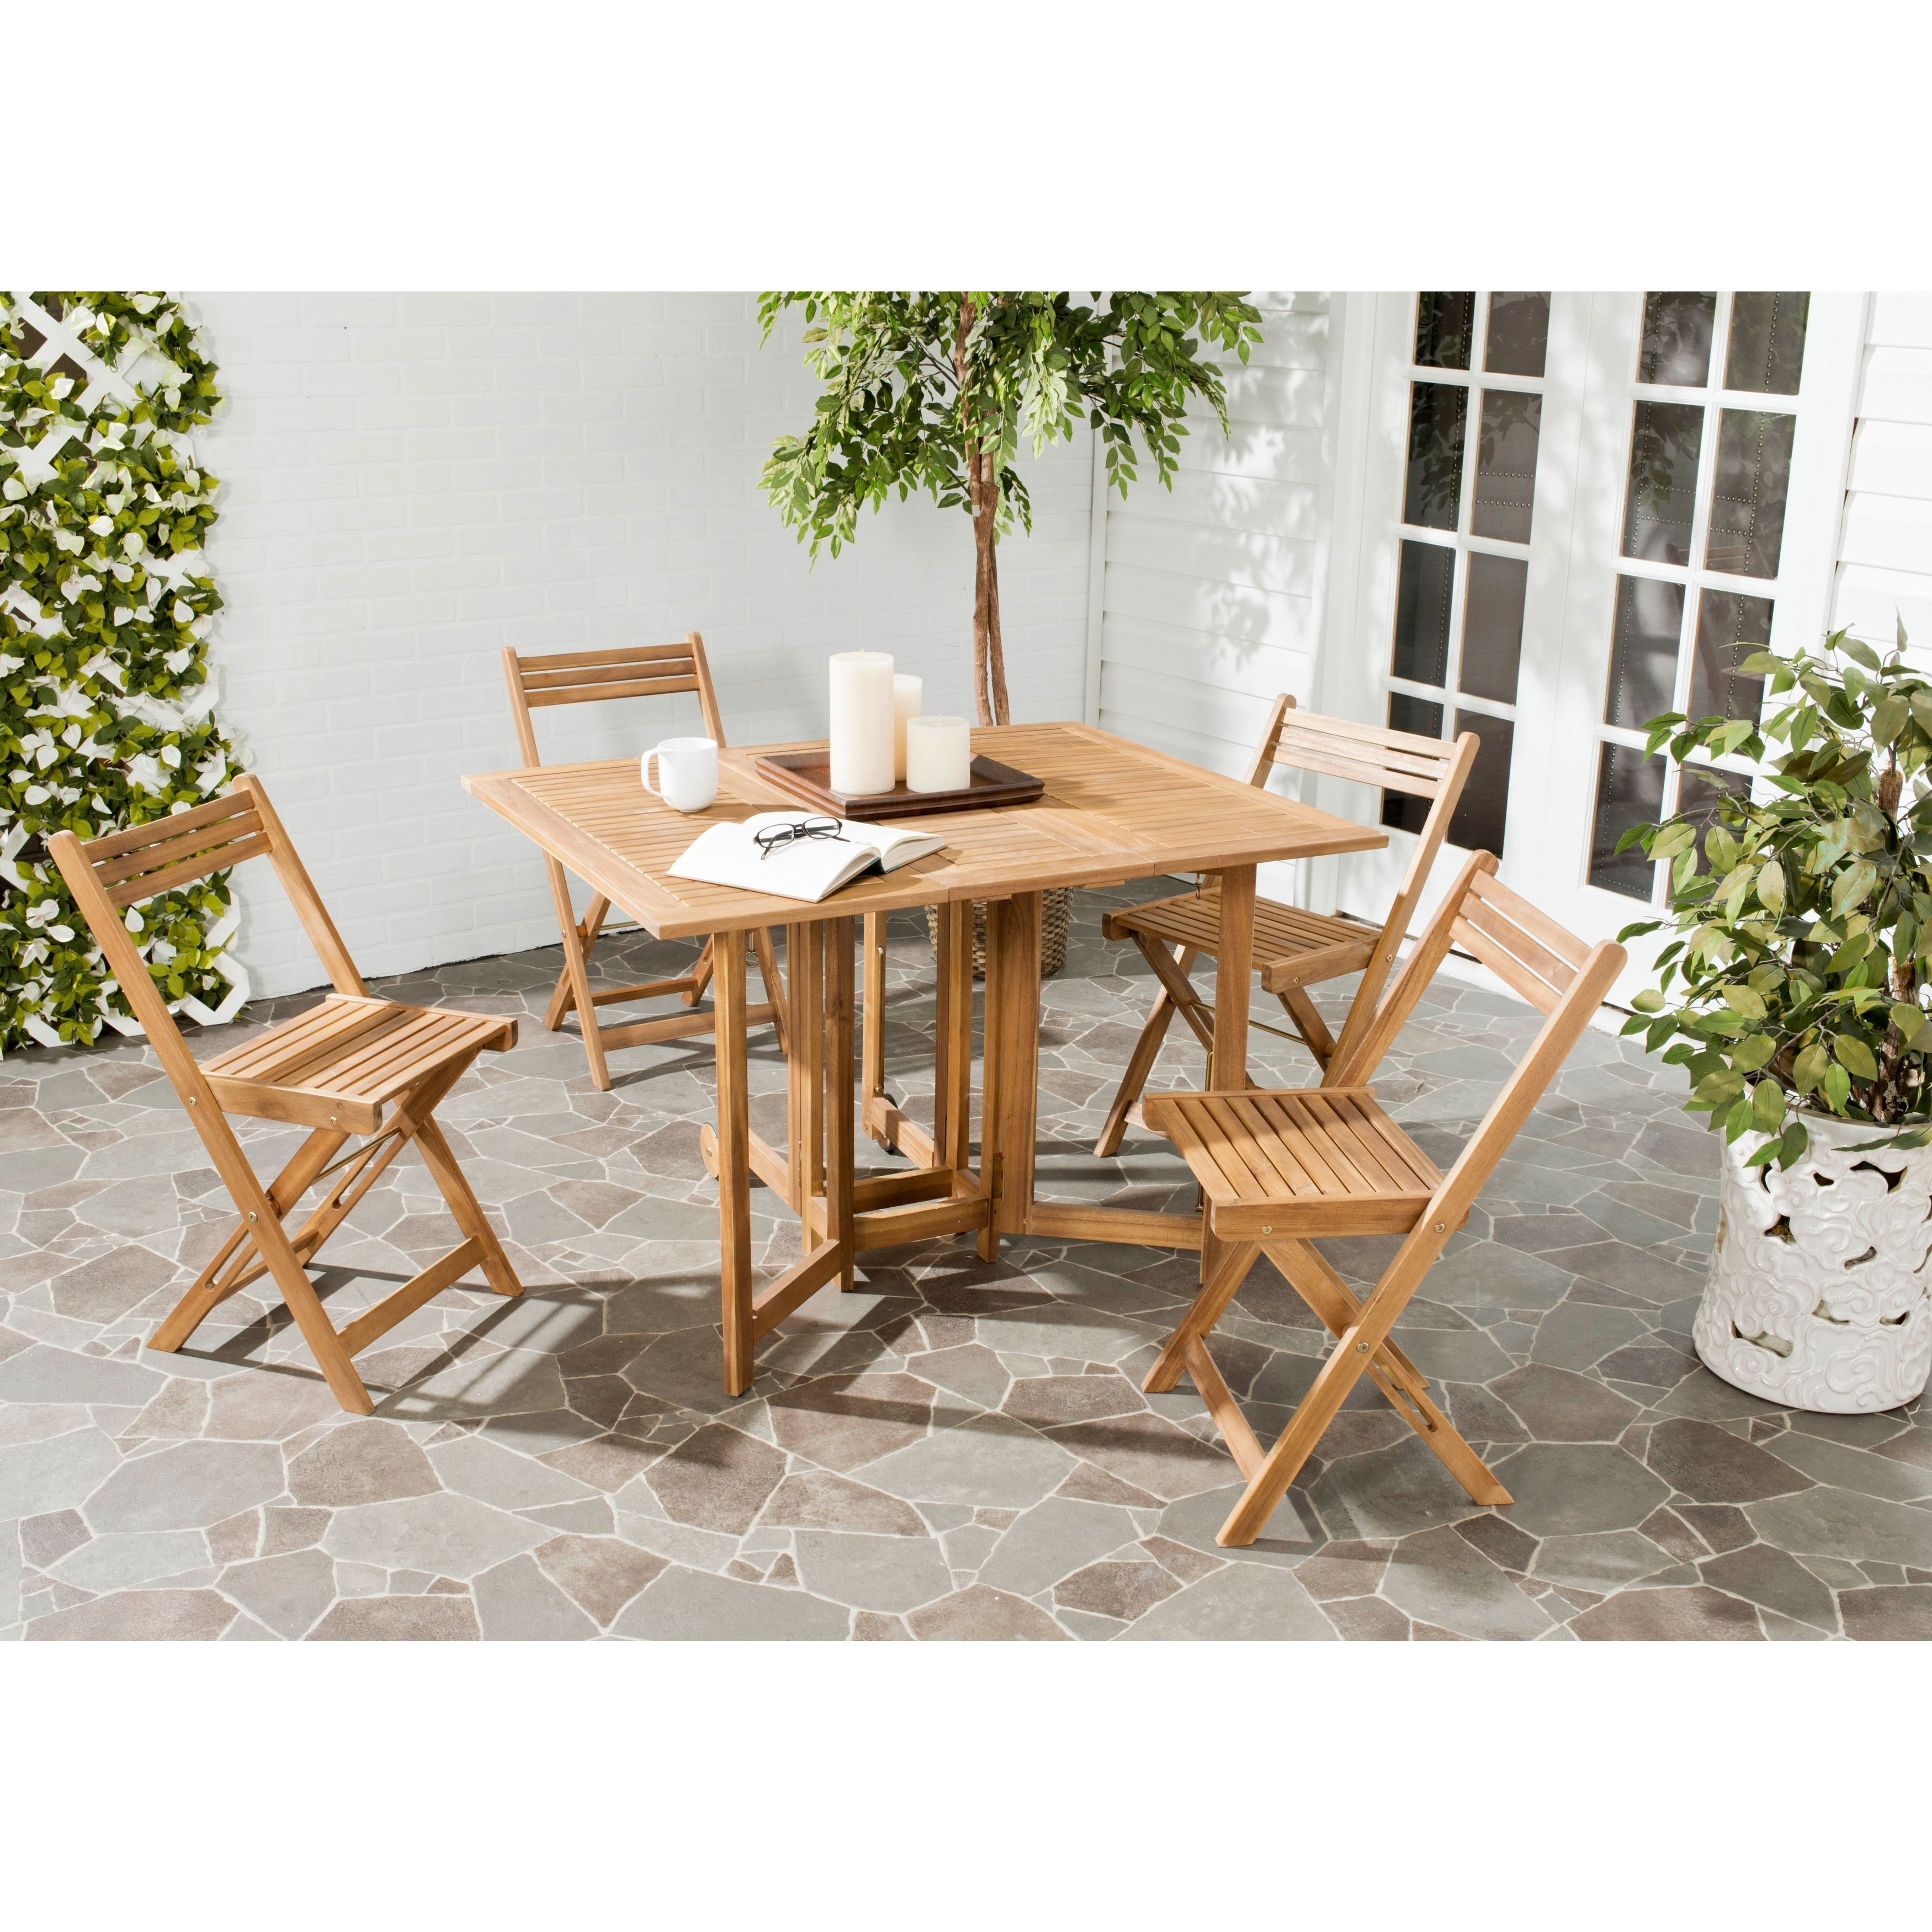 Space Saver Dining Set An Ingenious Space Saver Arvin Outdoor Dining Table And